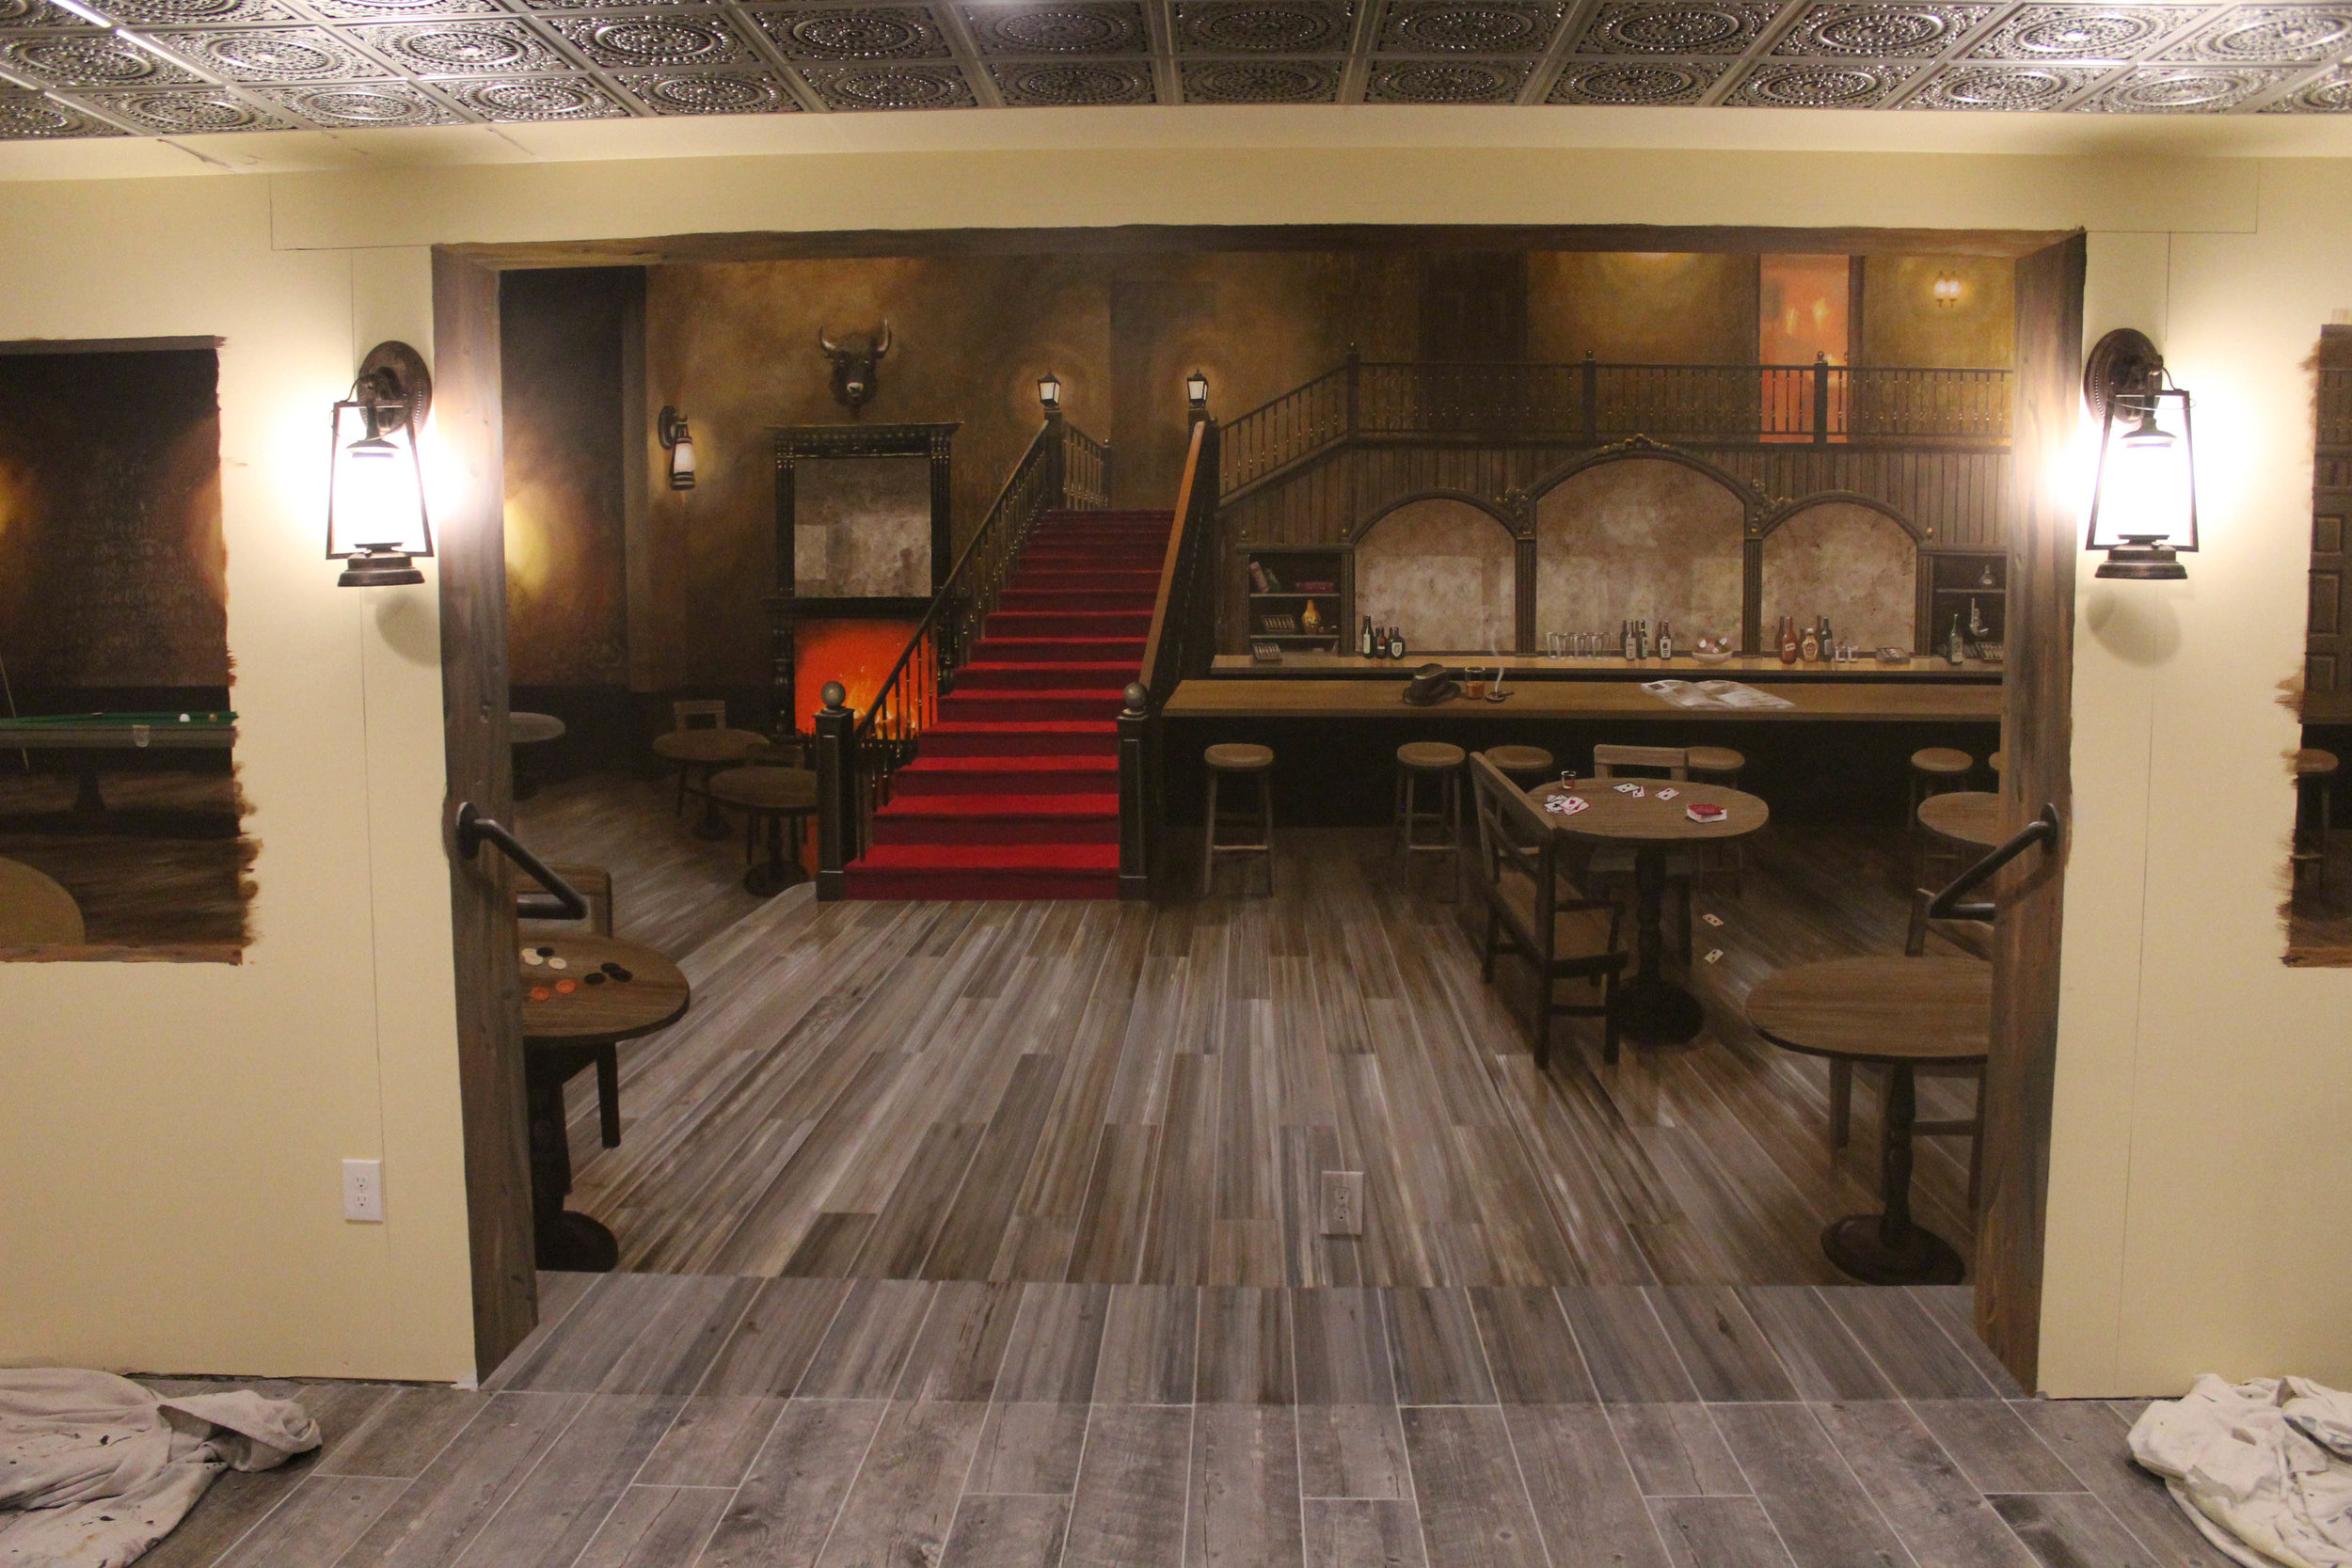 This photo shows the trompe l'oeil mural prior to the installation of surrounding trim. The floor of the room is matched into the mural to create the sense that the room continues. The scene within the mural depicts an old western hotel lobby and bar. The details within the mural will be echoed in reality by the details within the actual bar room.